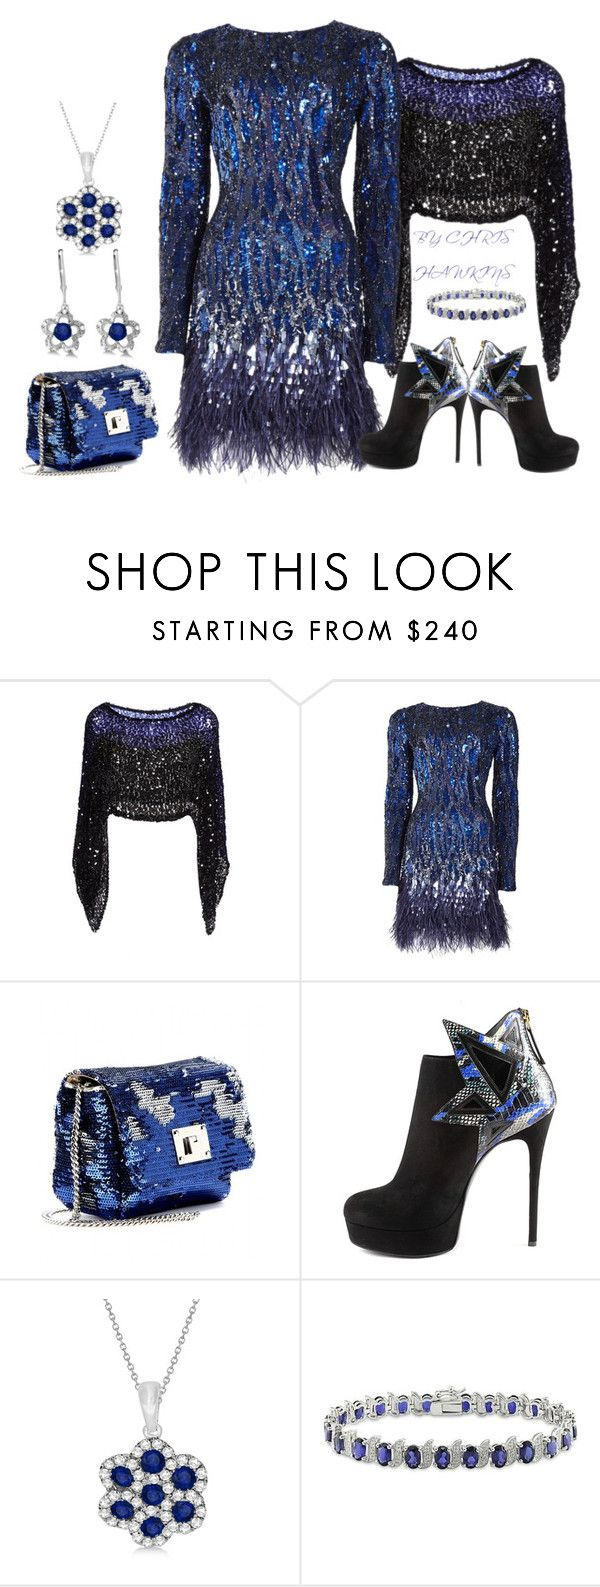 """SEQUINS , SAPPHIRES & STILETTOS"" by chris-hawkins ❤ liked on Polyvore featuring Sonia Rykiel, Matthew Williamson, Jimmy Choo, Gianmarco Lorenzi, Allurez and Amour"